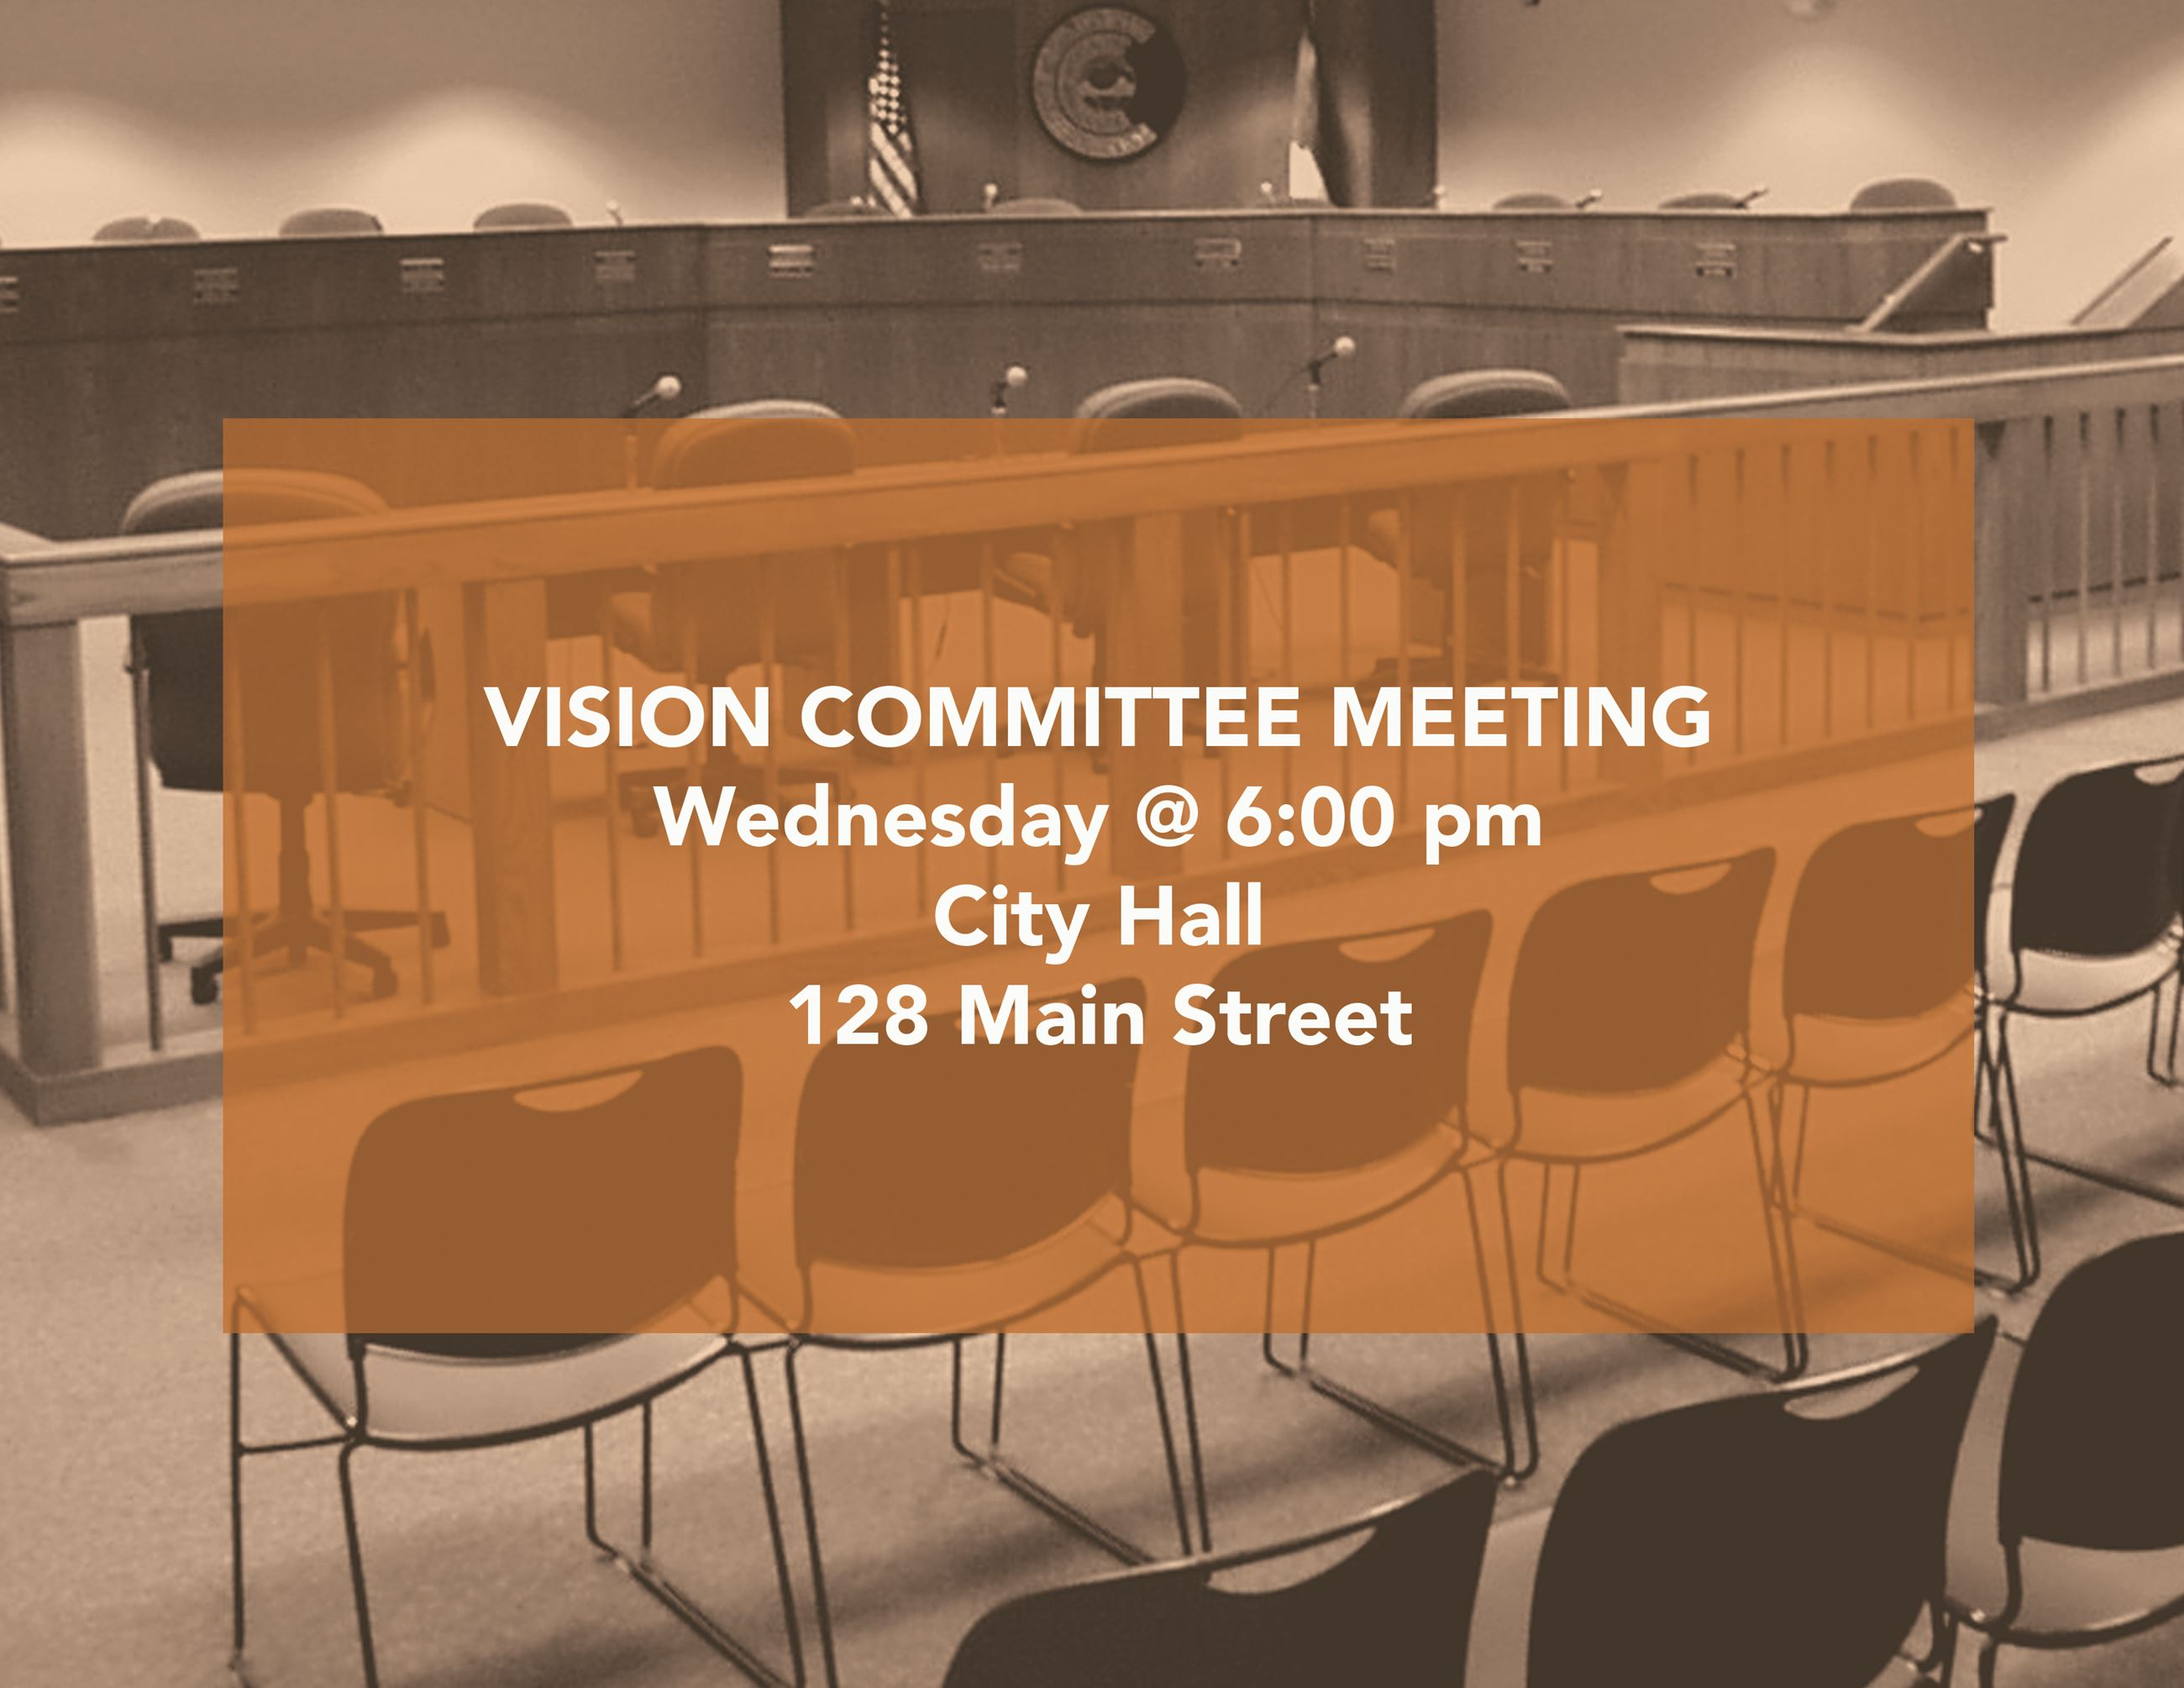 Vision Committee Wednesday at 6pm